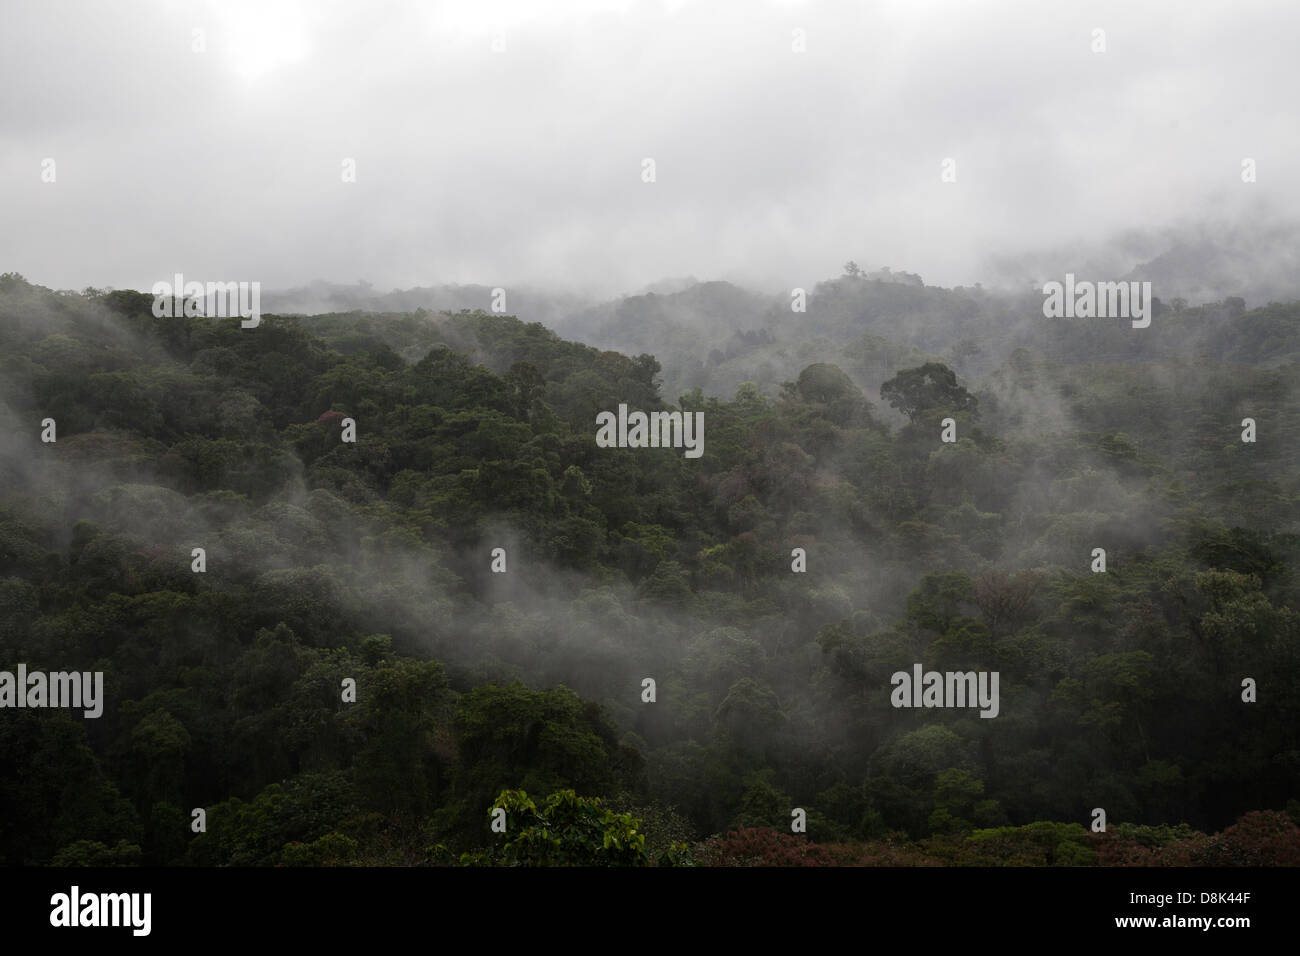 Cloud forest in the central highlands of Costa Rica - Stock Image